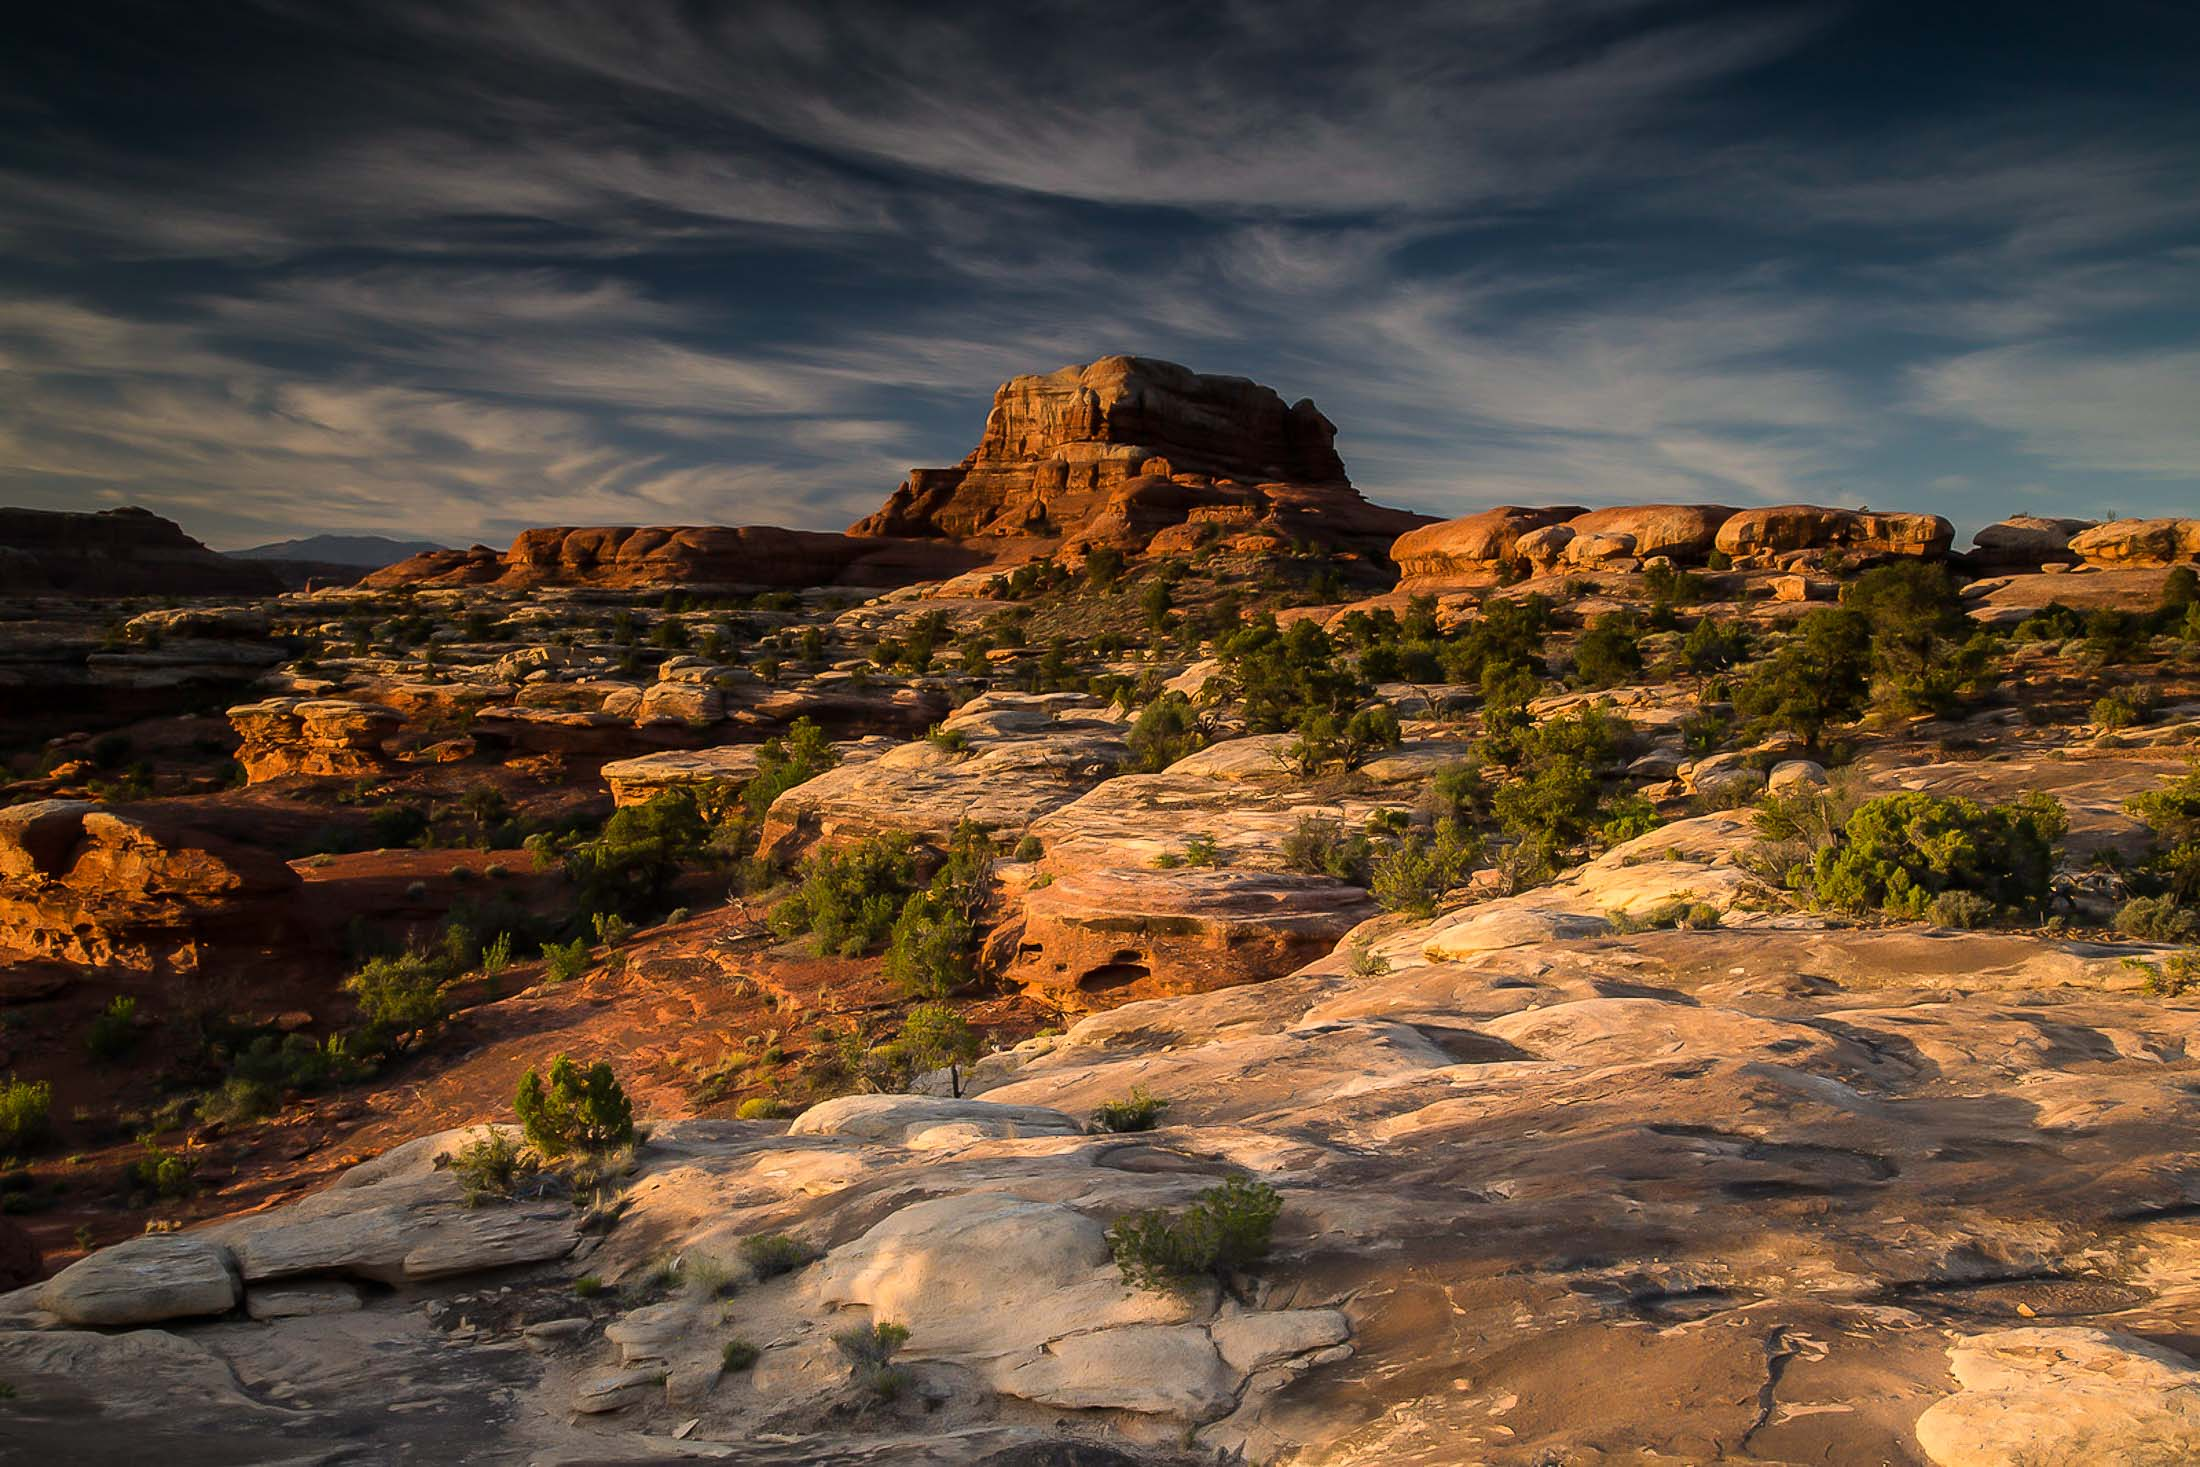 sundown, remote, rugged, Moab Utah, breathtaking, sweeping landscapes, canyon buttes, soft rich, nuances, photographers dream, panorama, photo